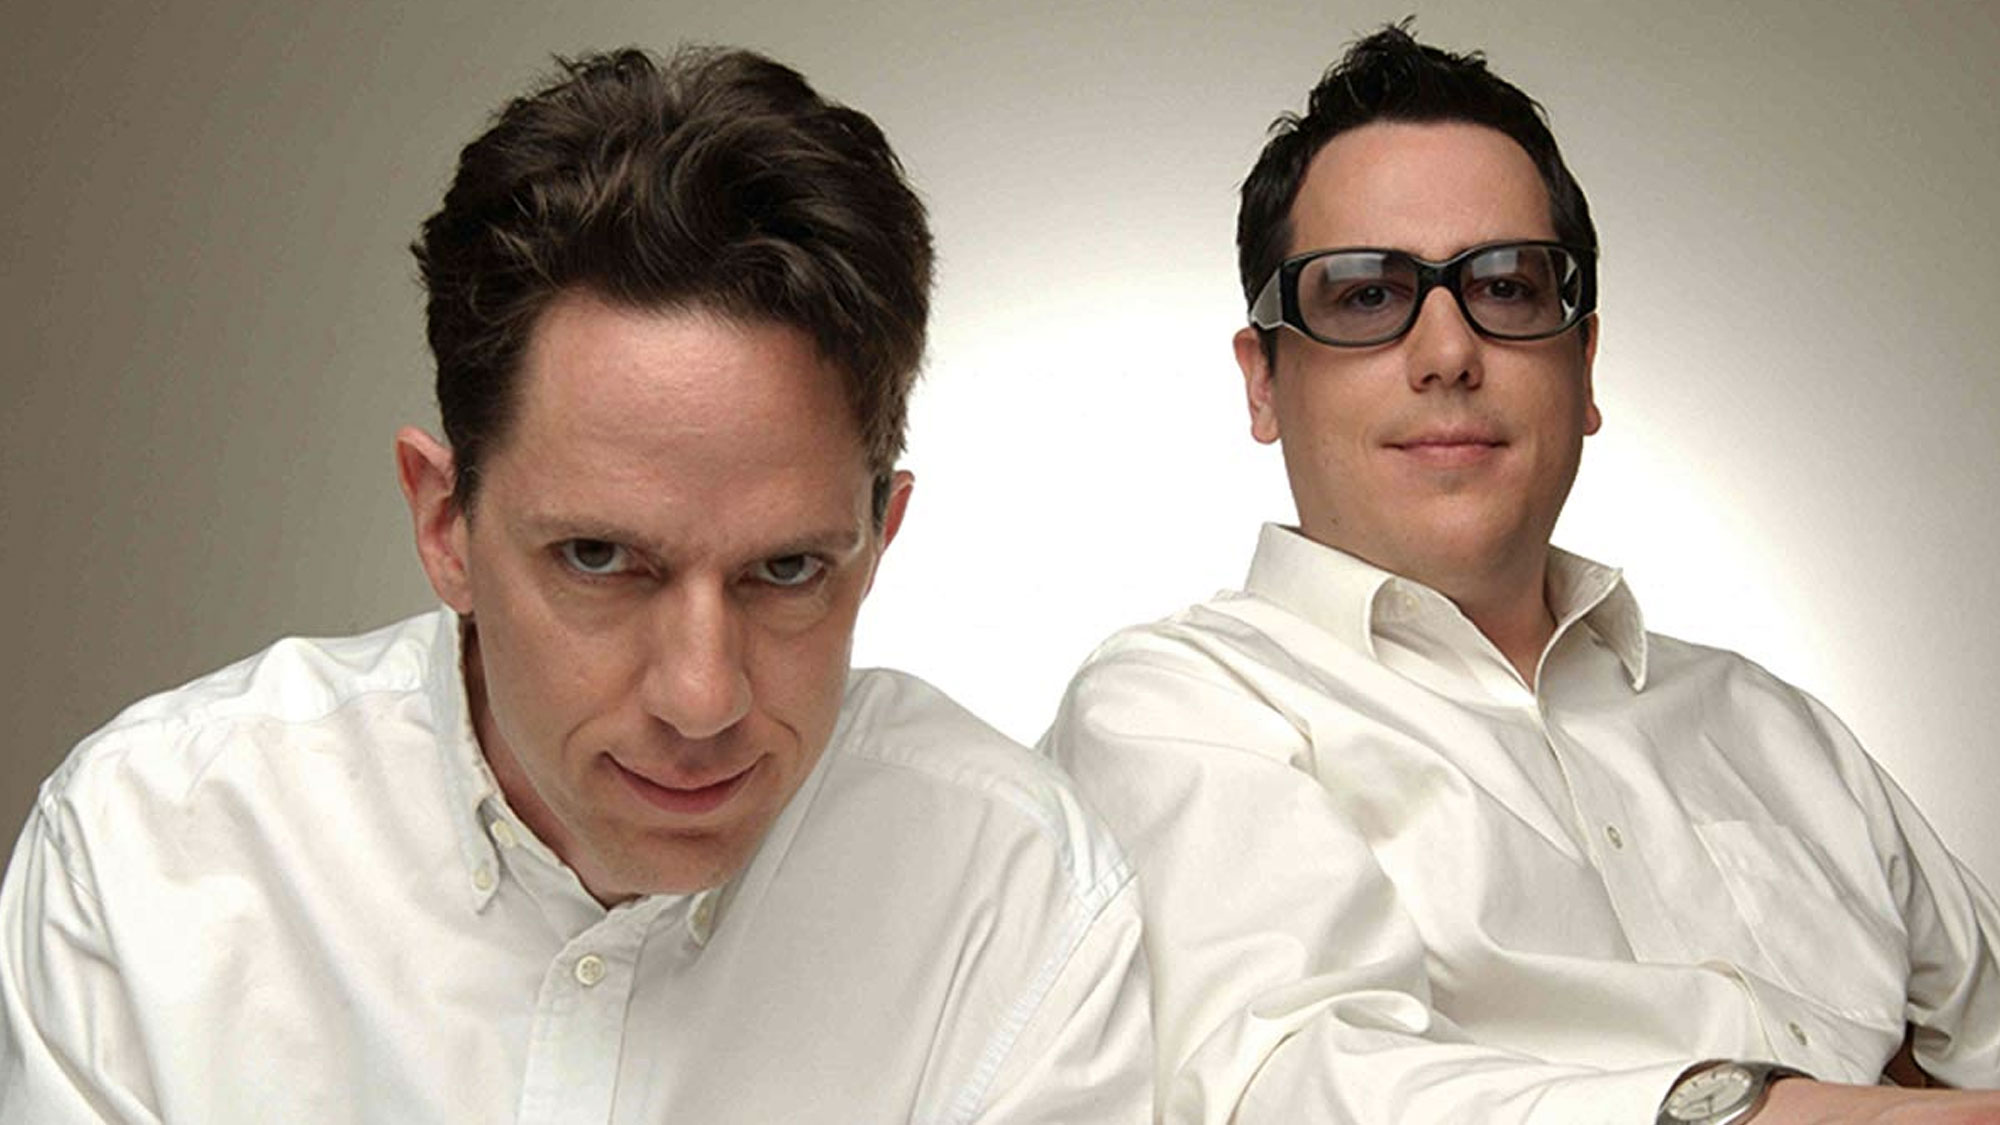 They Might Be Giants en tournée aux États-Unis et au Canada